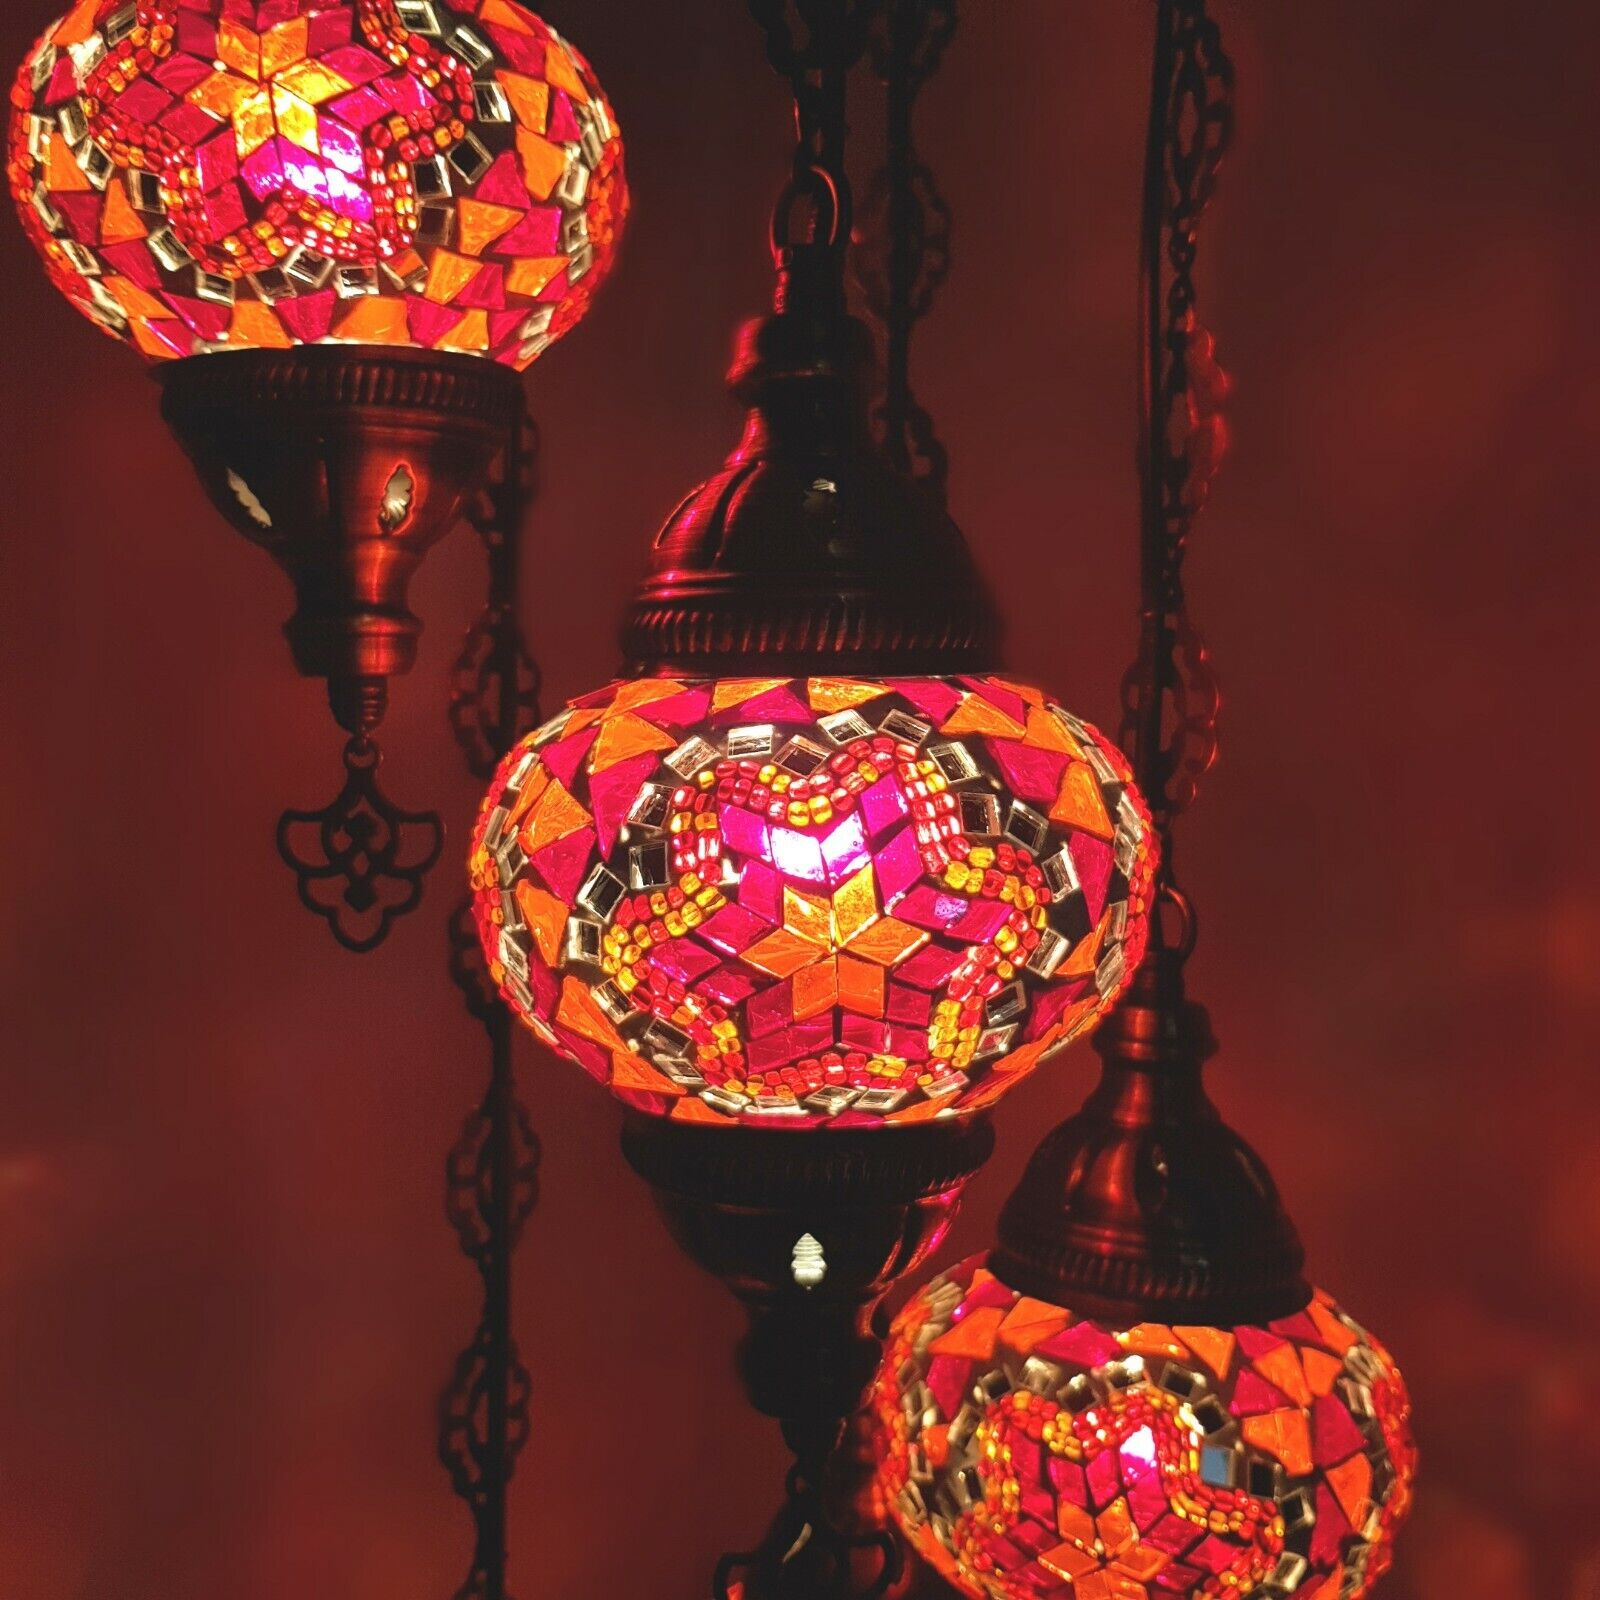 Glass Lamp Ceiling Details About Authentic Turkish Moroccan Glass Mosaic Hanging Lamp Ceiling Light Chandeliers